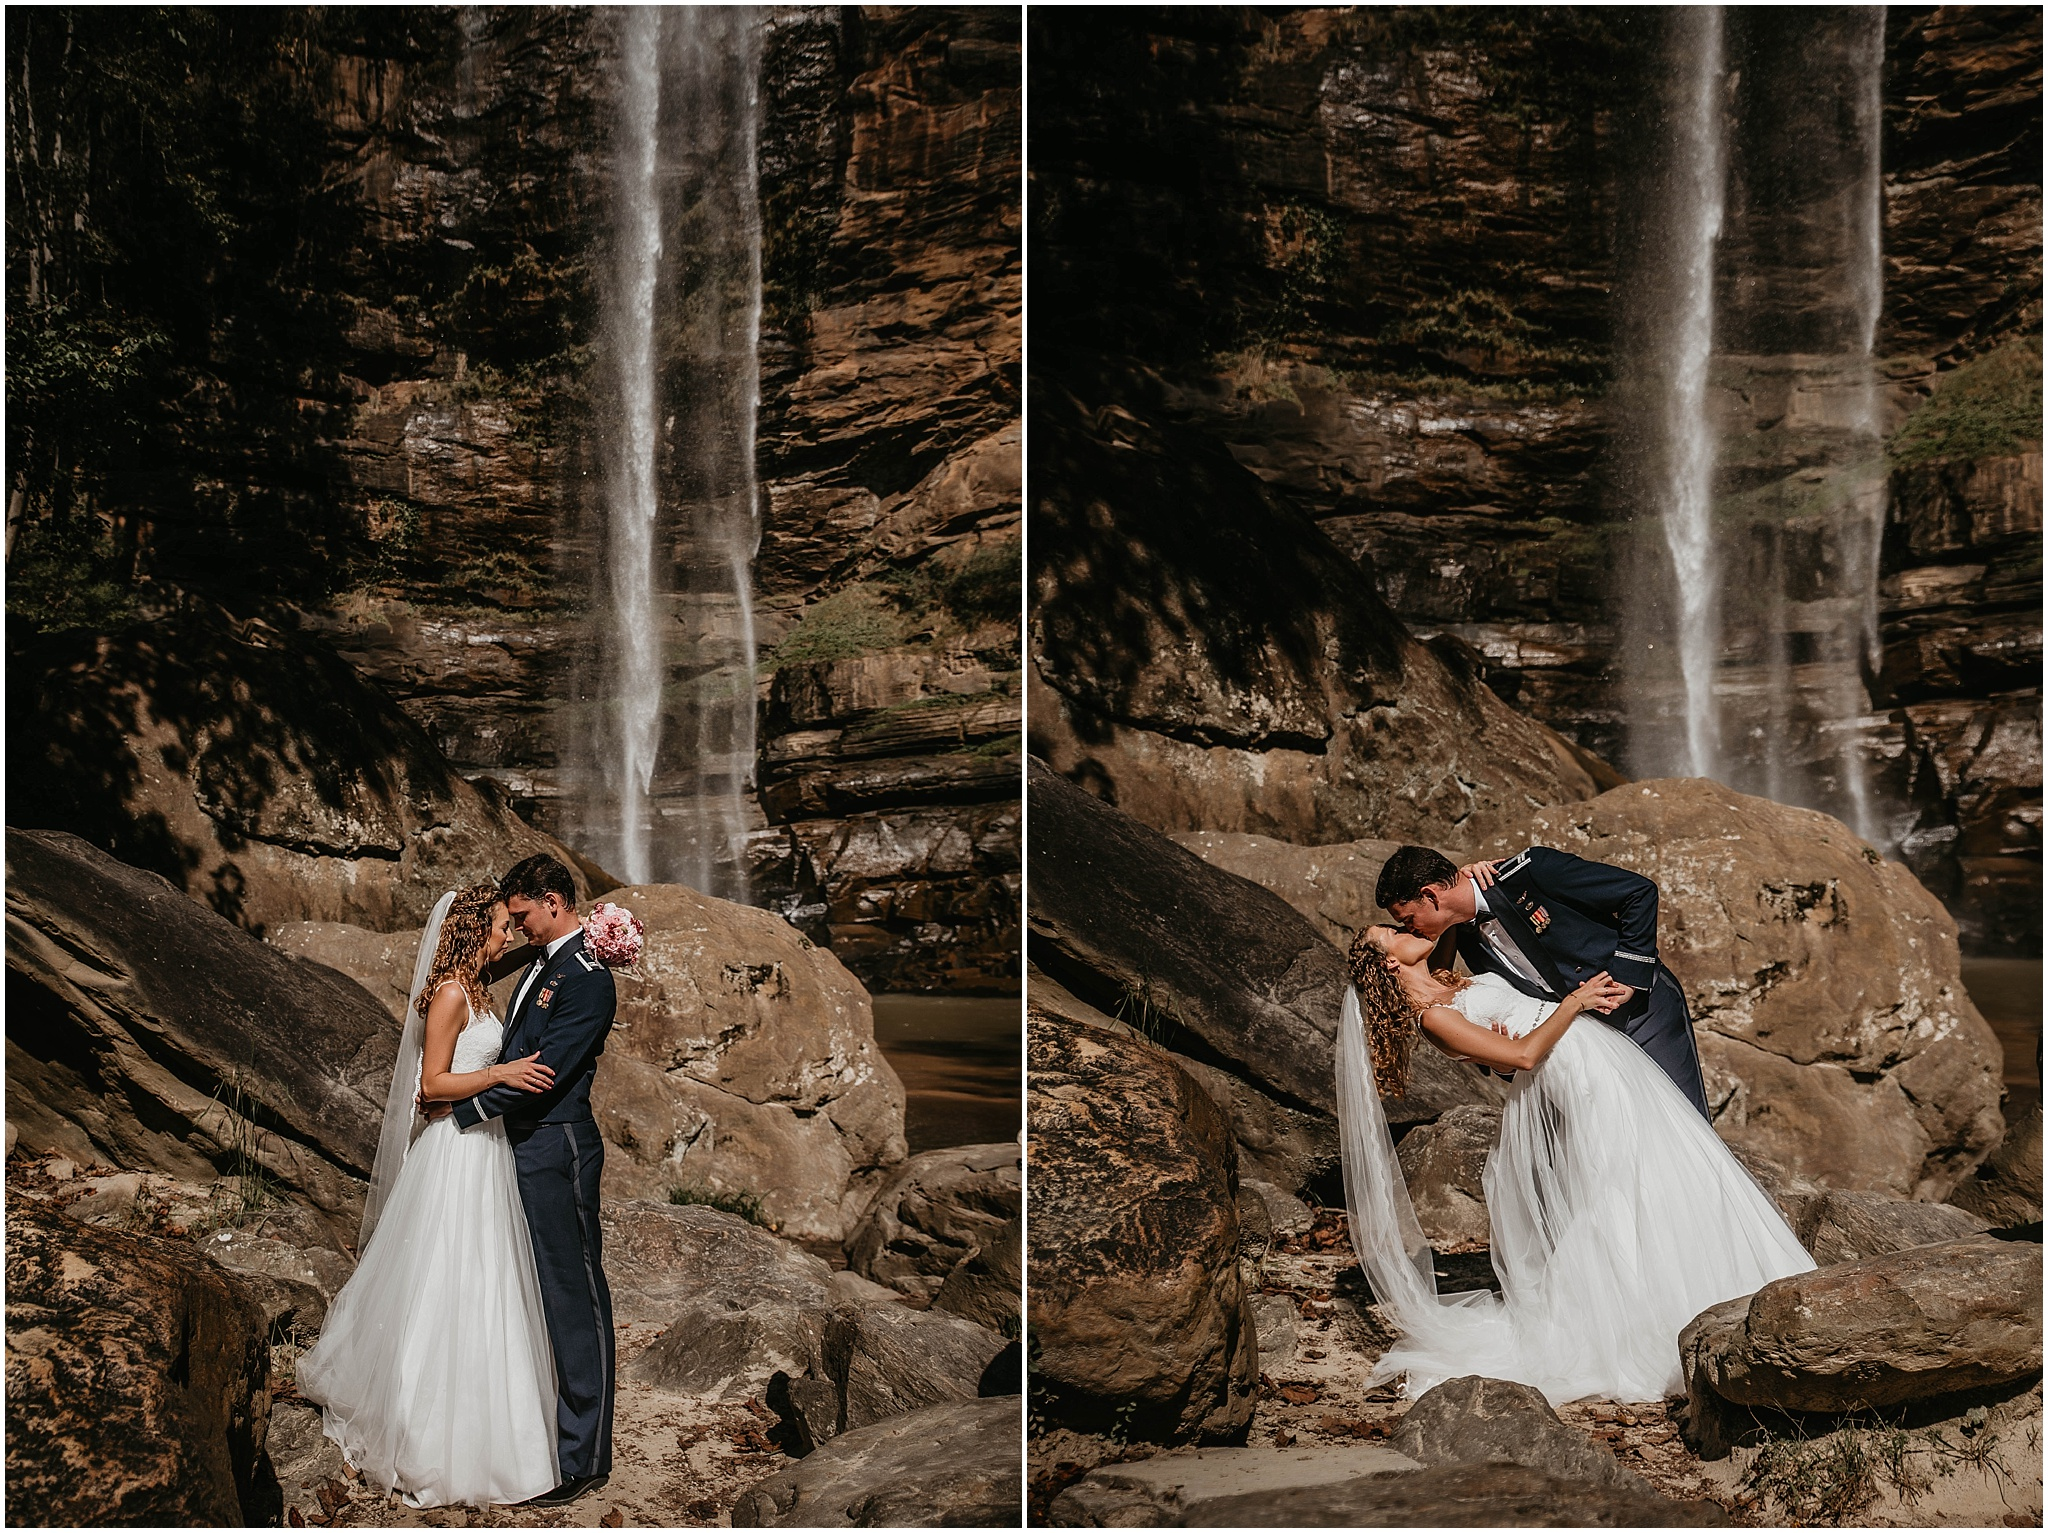 ogletree-estates-georgia-toccoa-falls-wedding_0069.jpg